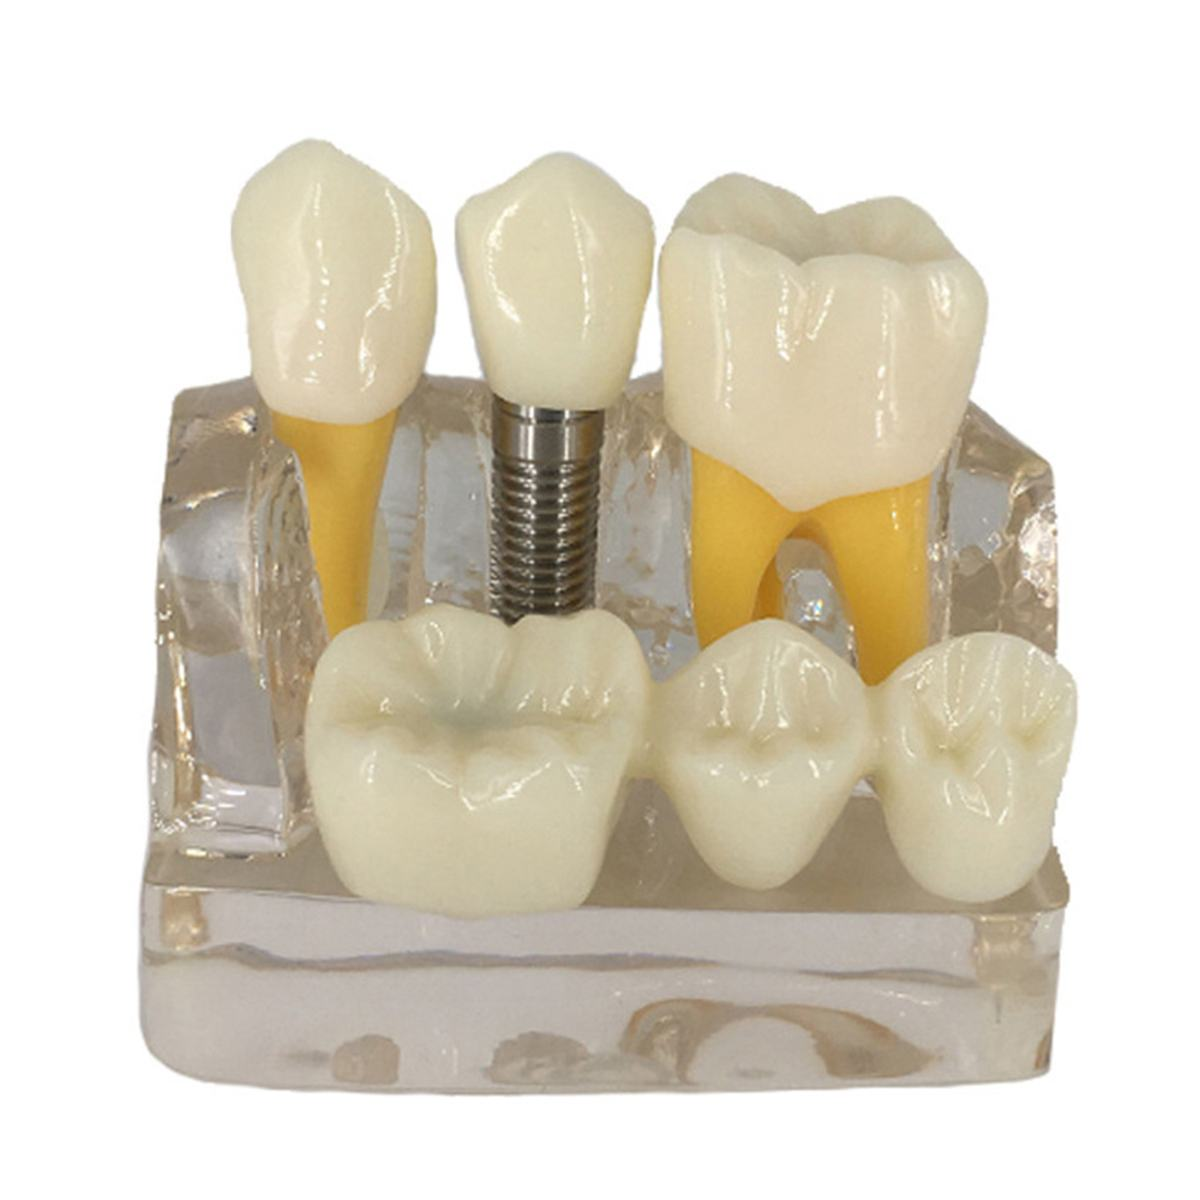 4X Dental Teeth Model For Teaching And Hospital Dentist Material Teeth Model Medical Science Dental Disease Teaching Study New4X Dental Teeth Model For Teaching And Hospital Dentist Material Teeth Model Medical Science Dental Disease Teaching Study New